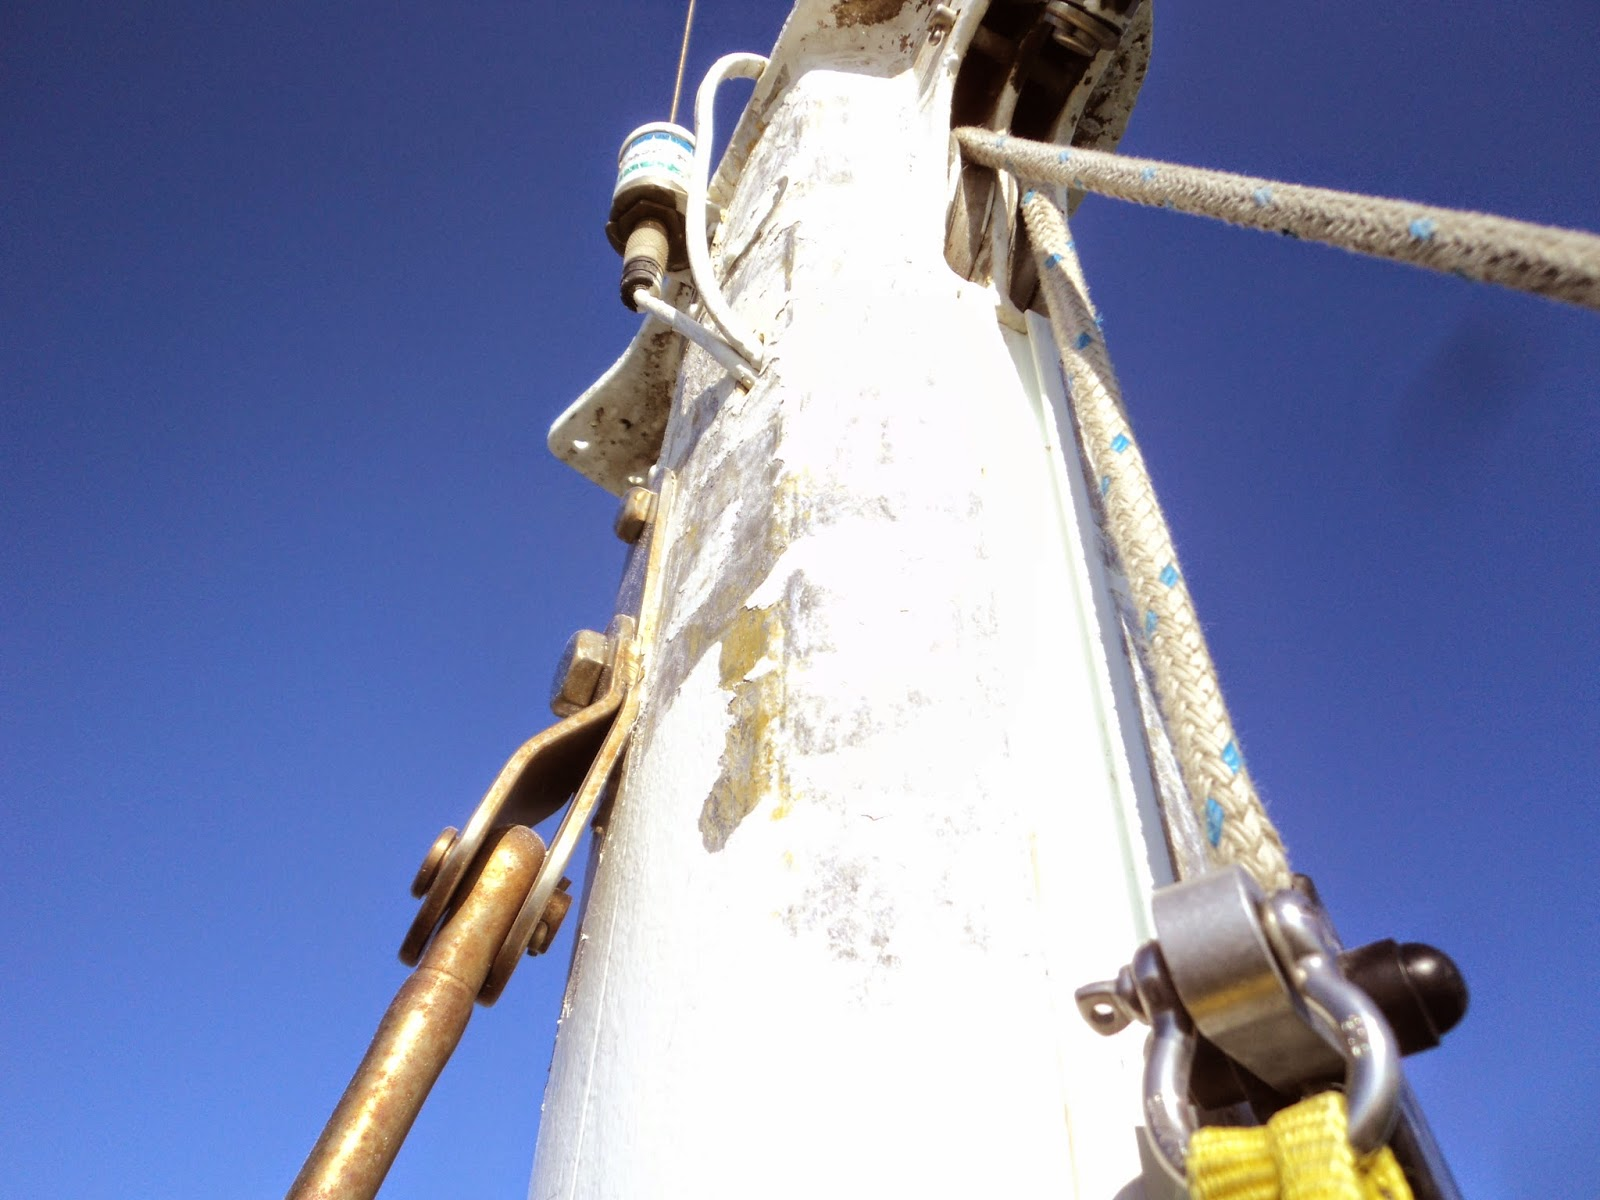 Mast top maintenance